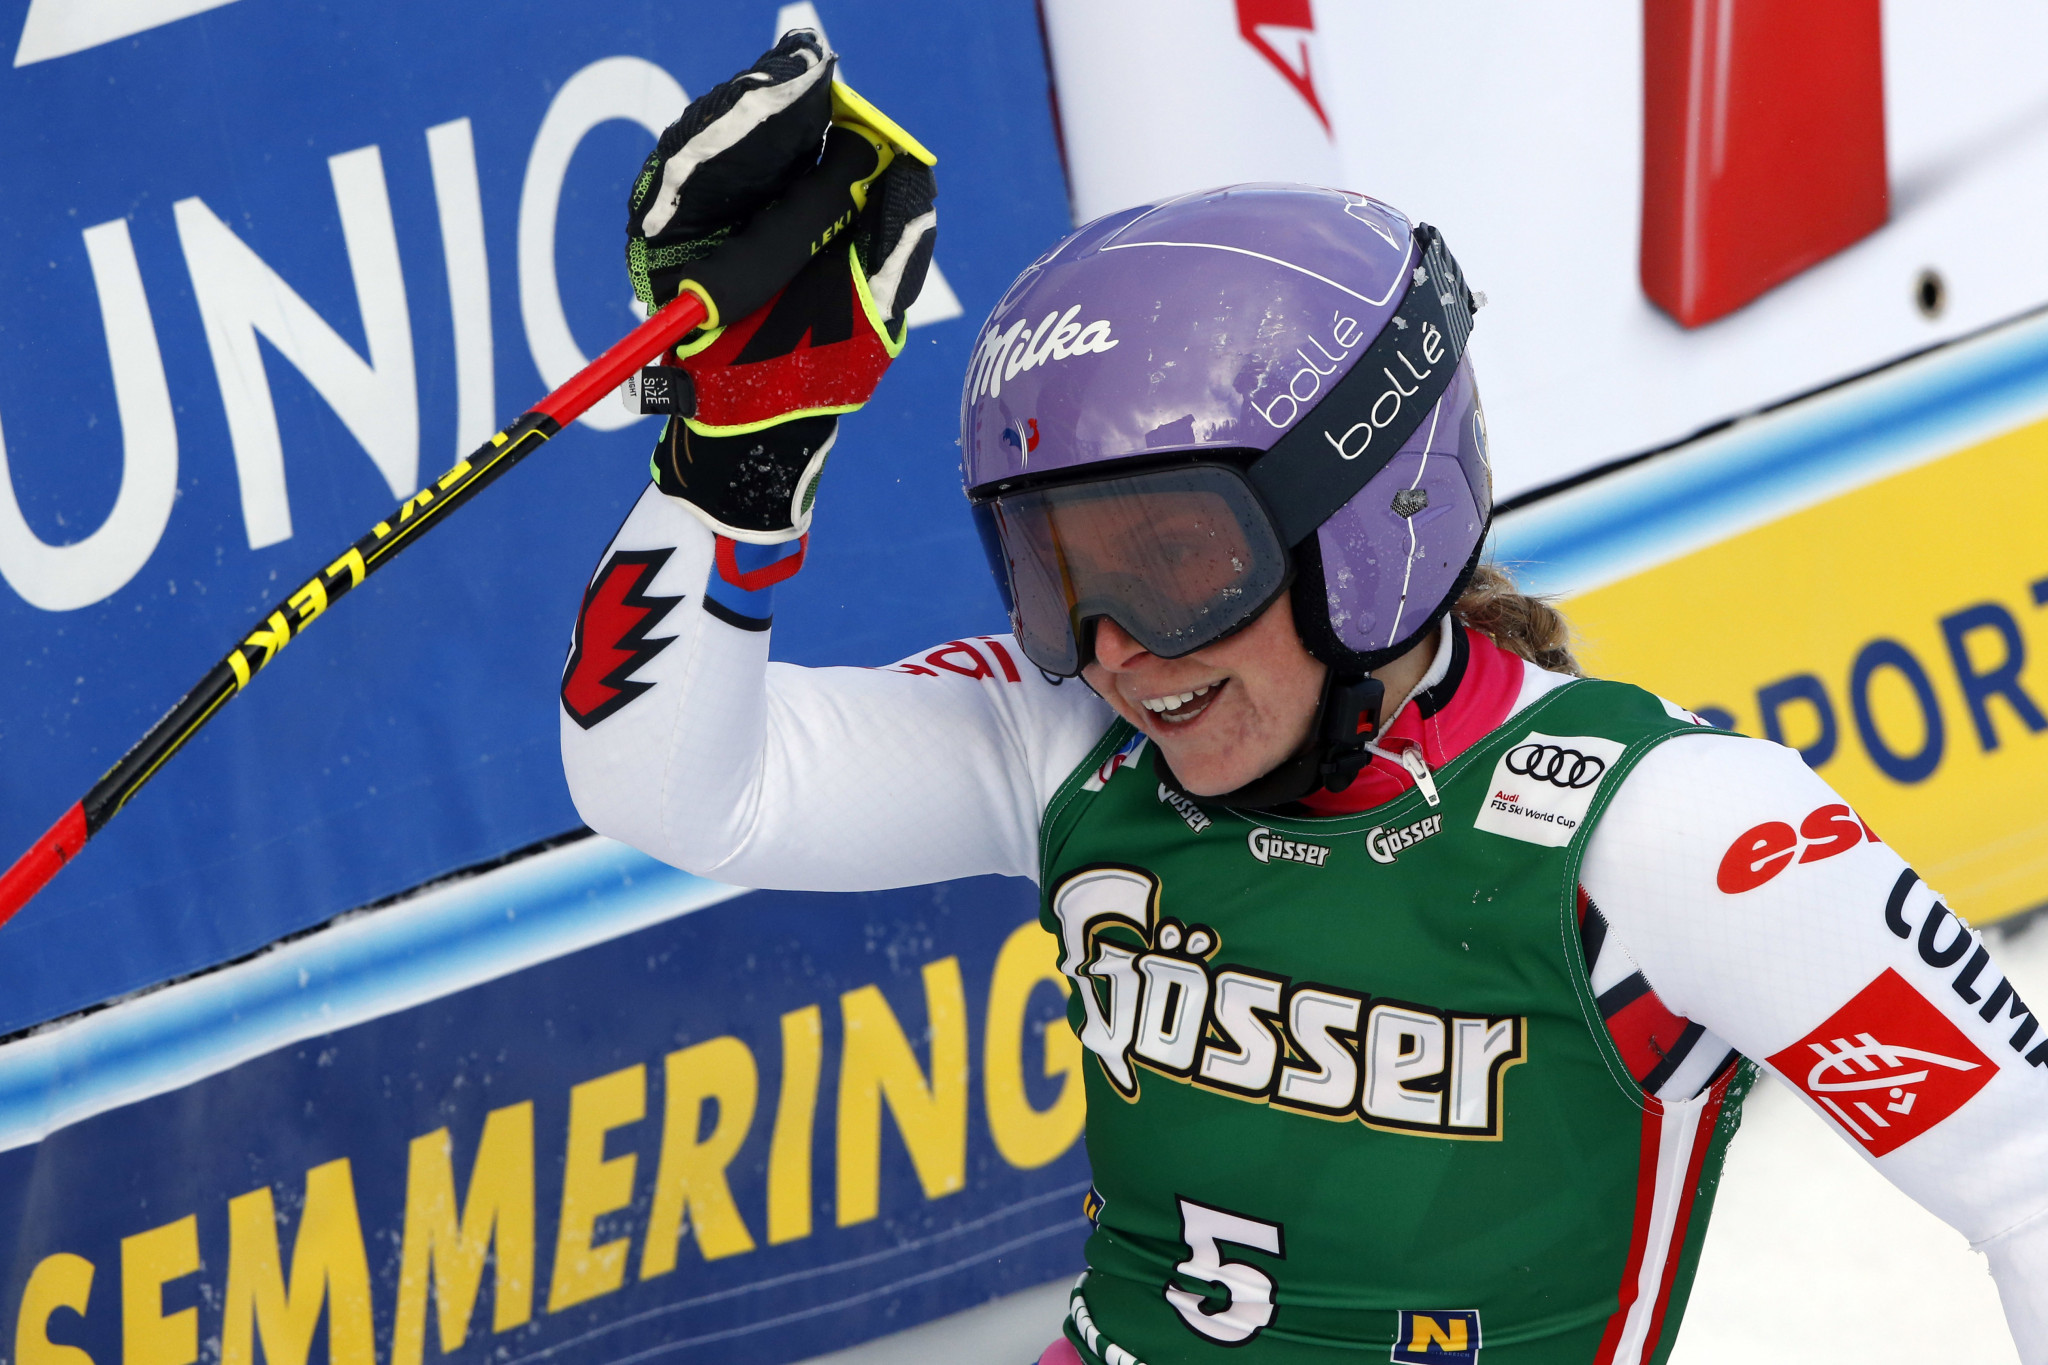 Tessa Worley will aim for a second giant slalom victory of the season ©Getty Images